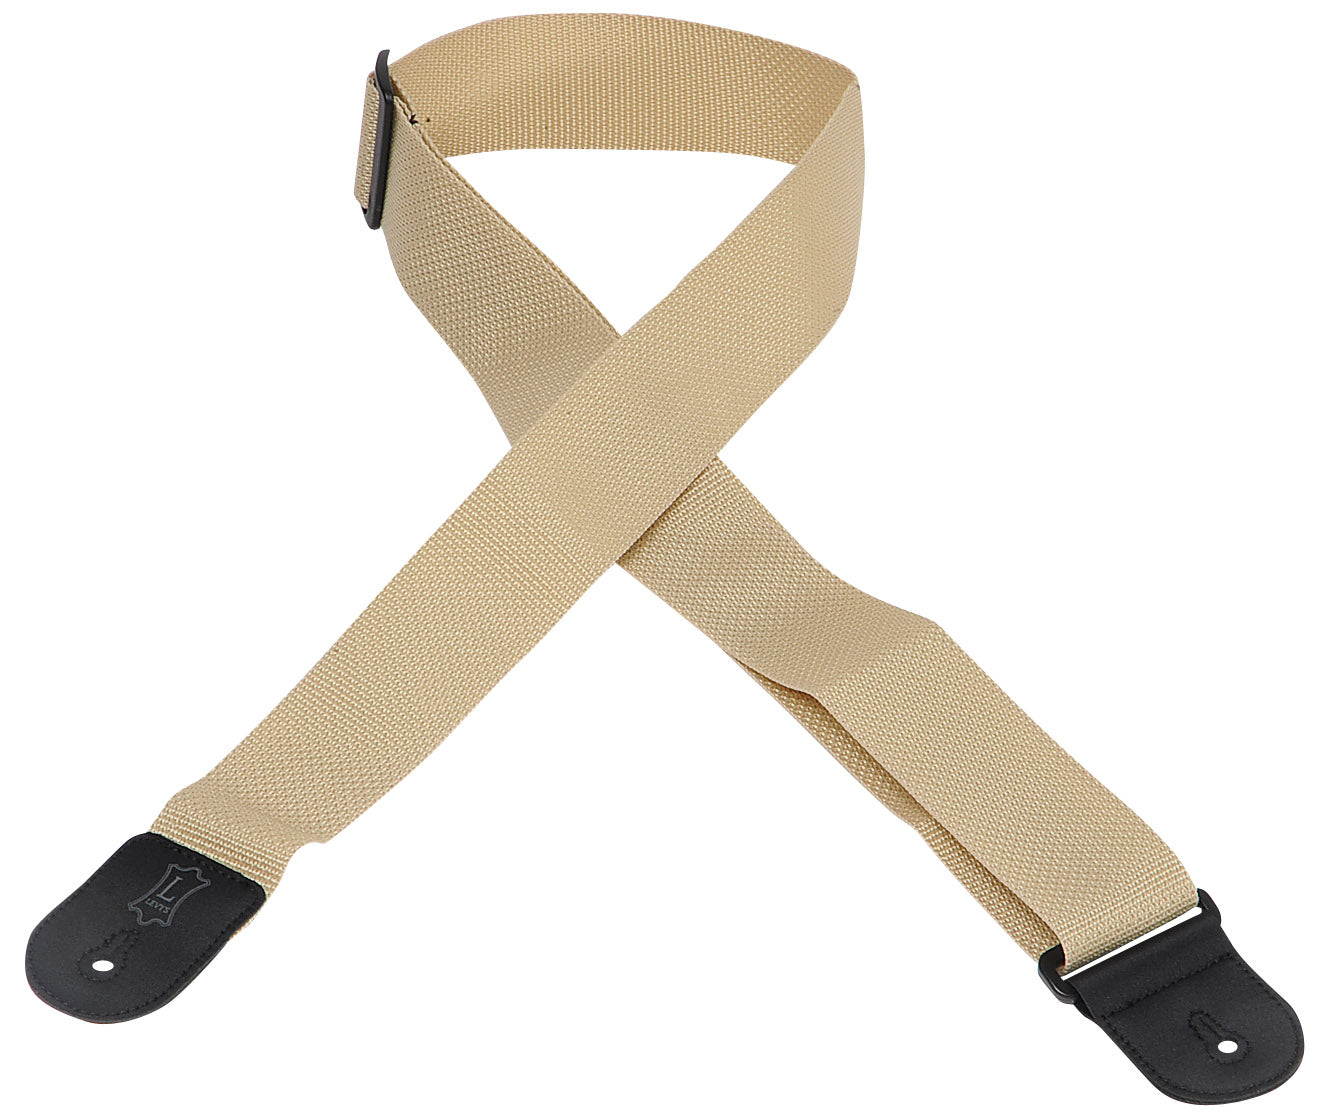 "LEVY'S 2"" POLYPROPYLENE GUITAR STRAP TAN"